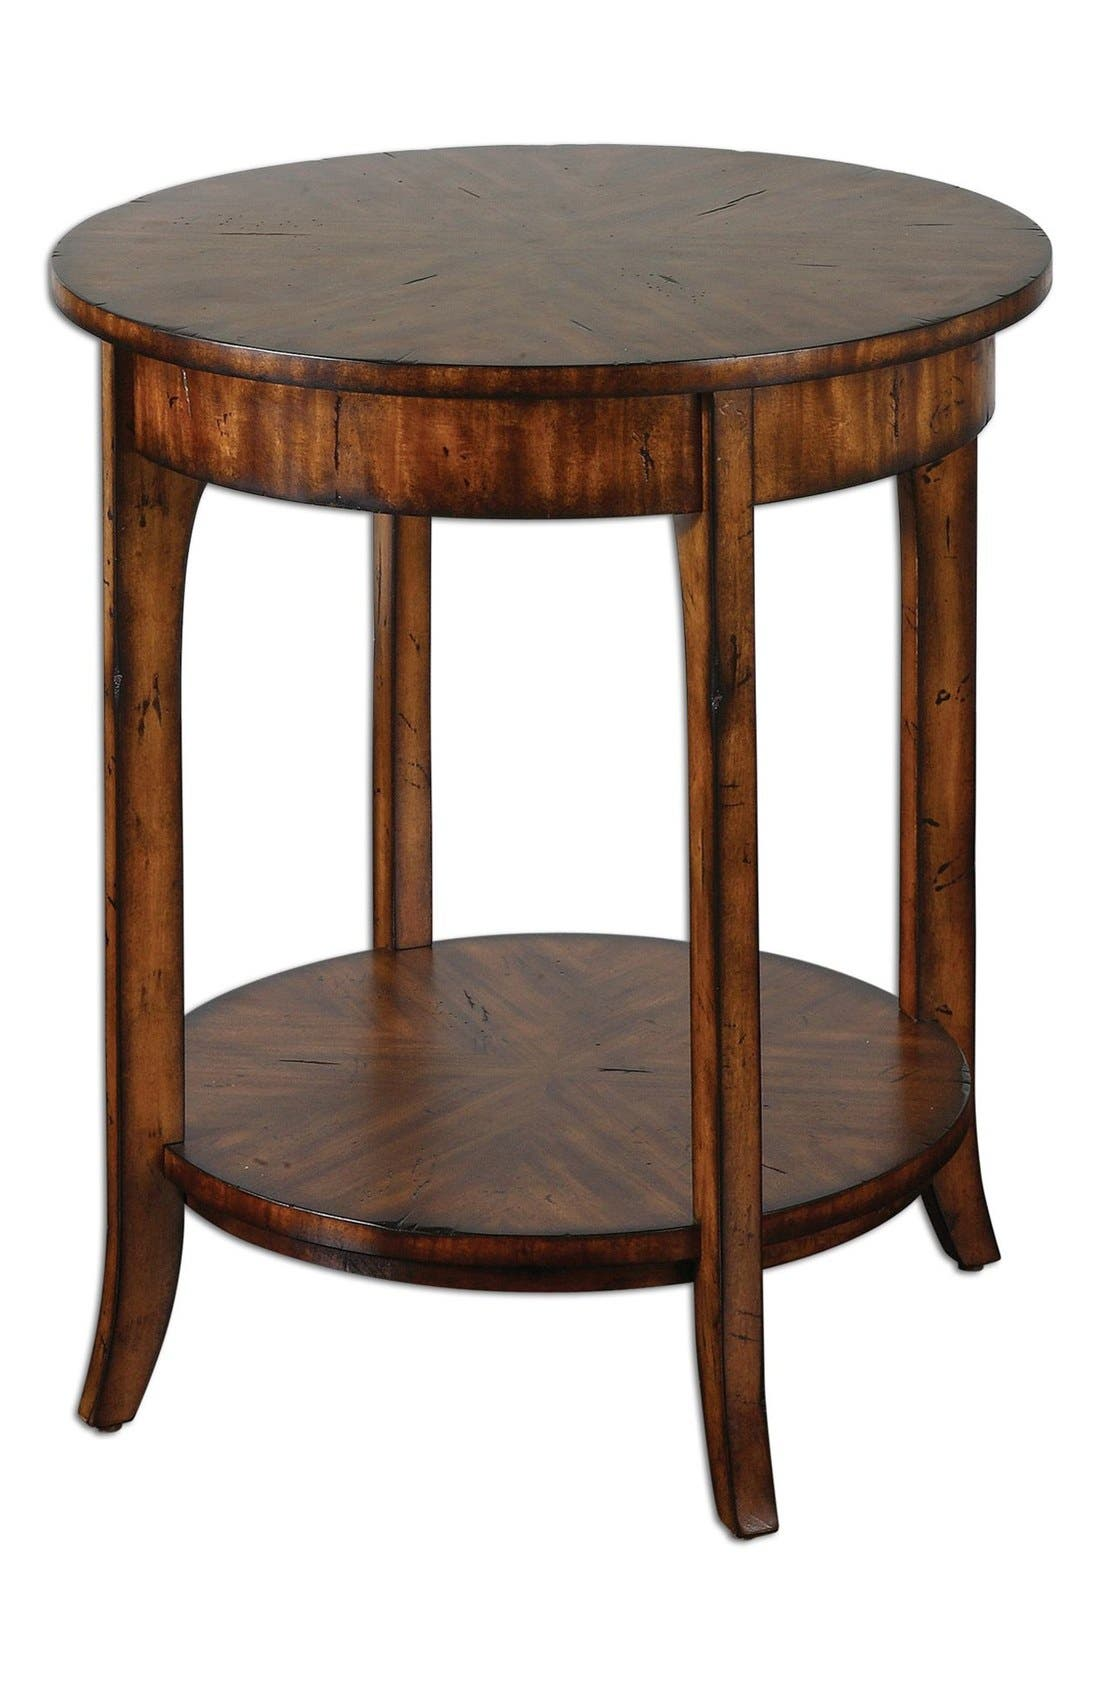 UTTERMOST 'Carmel' Distressed Wood End Table